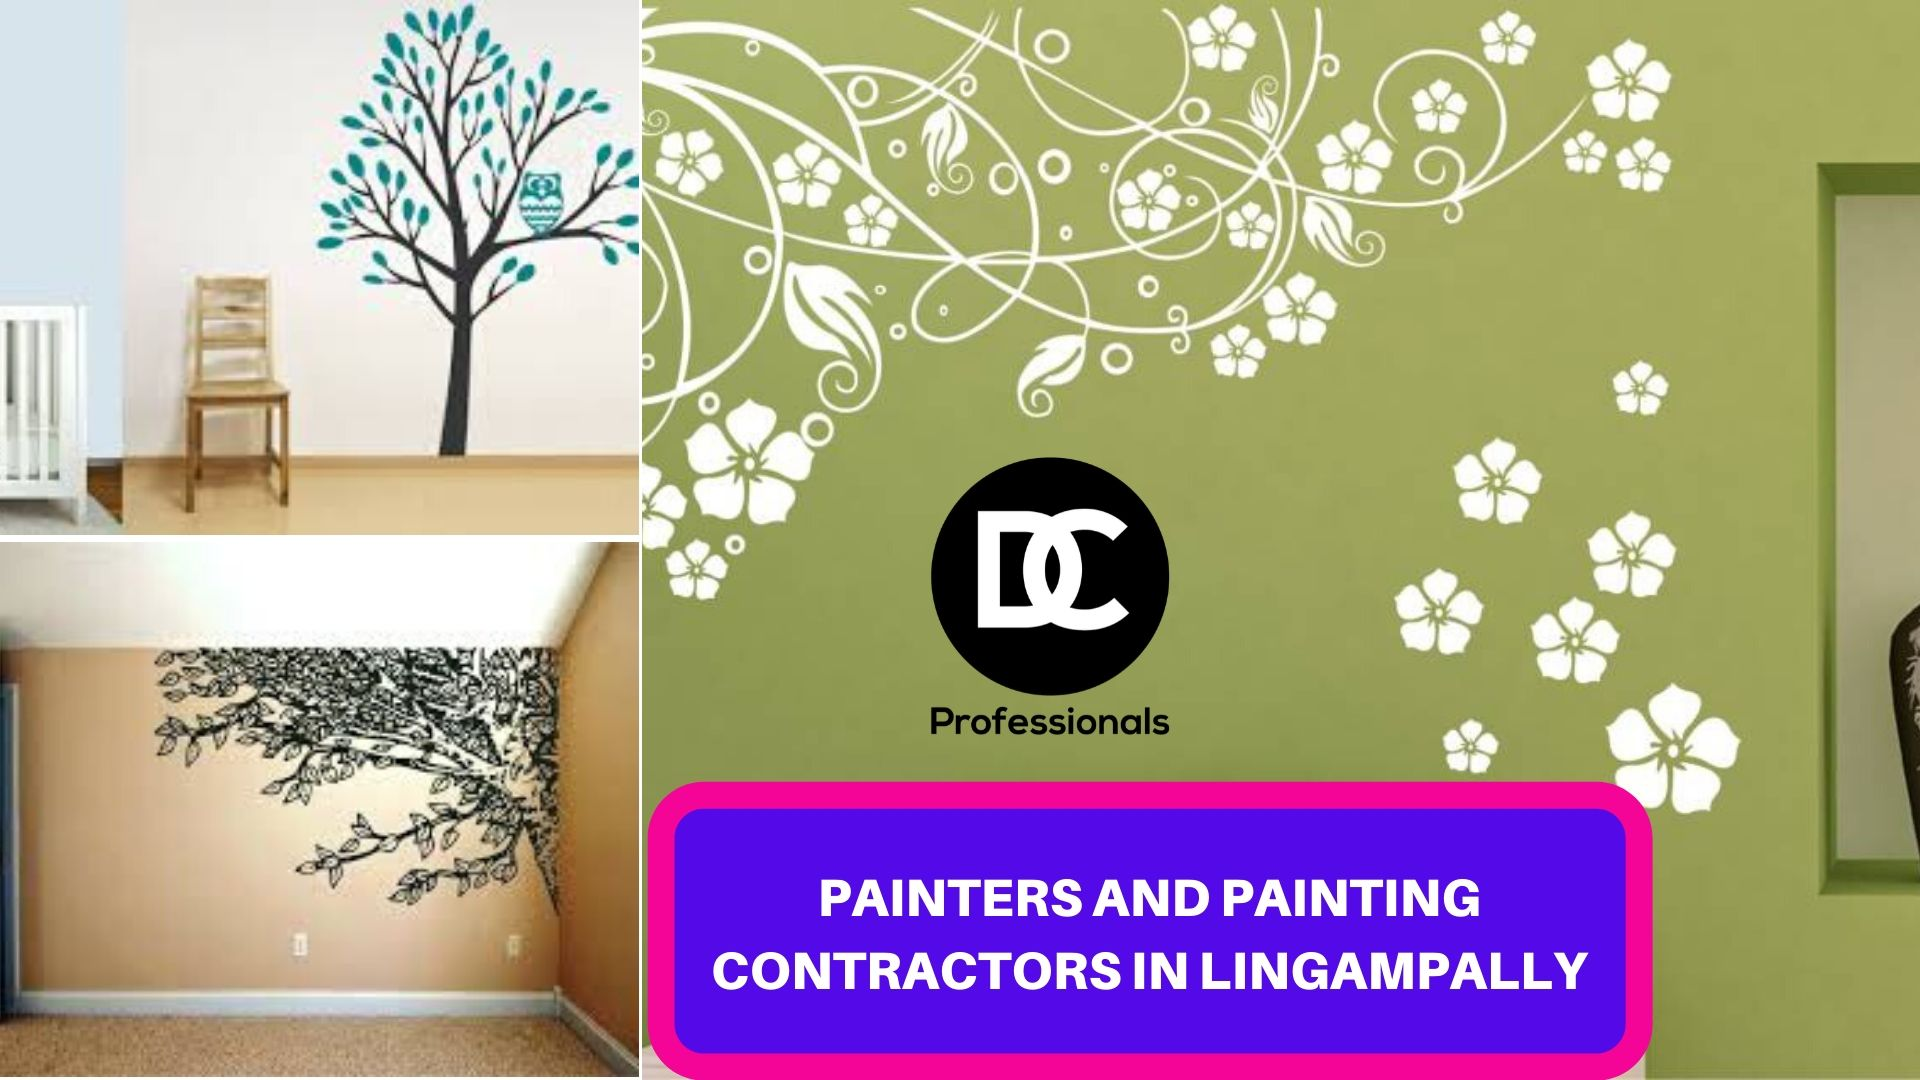 Painters and Painting Contractors in Lingampally